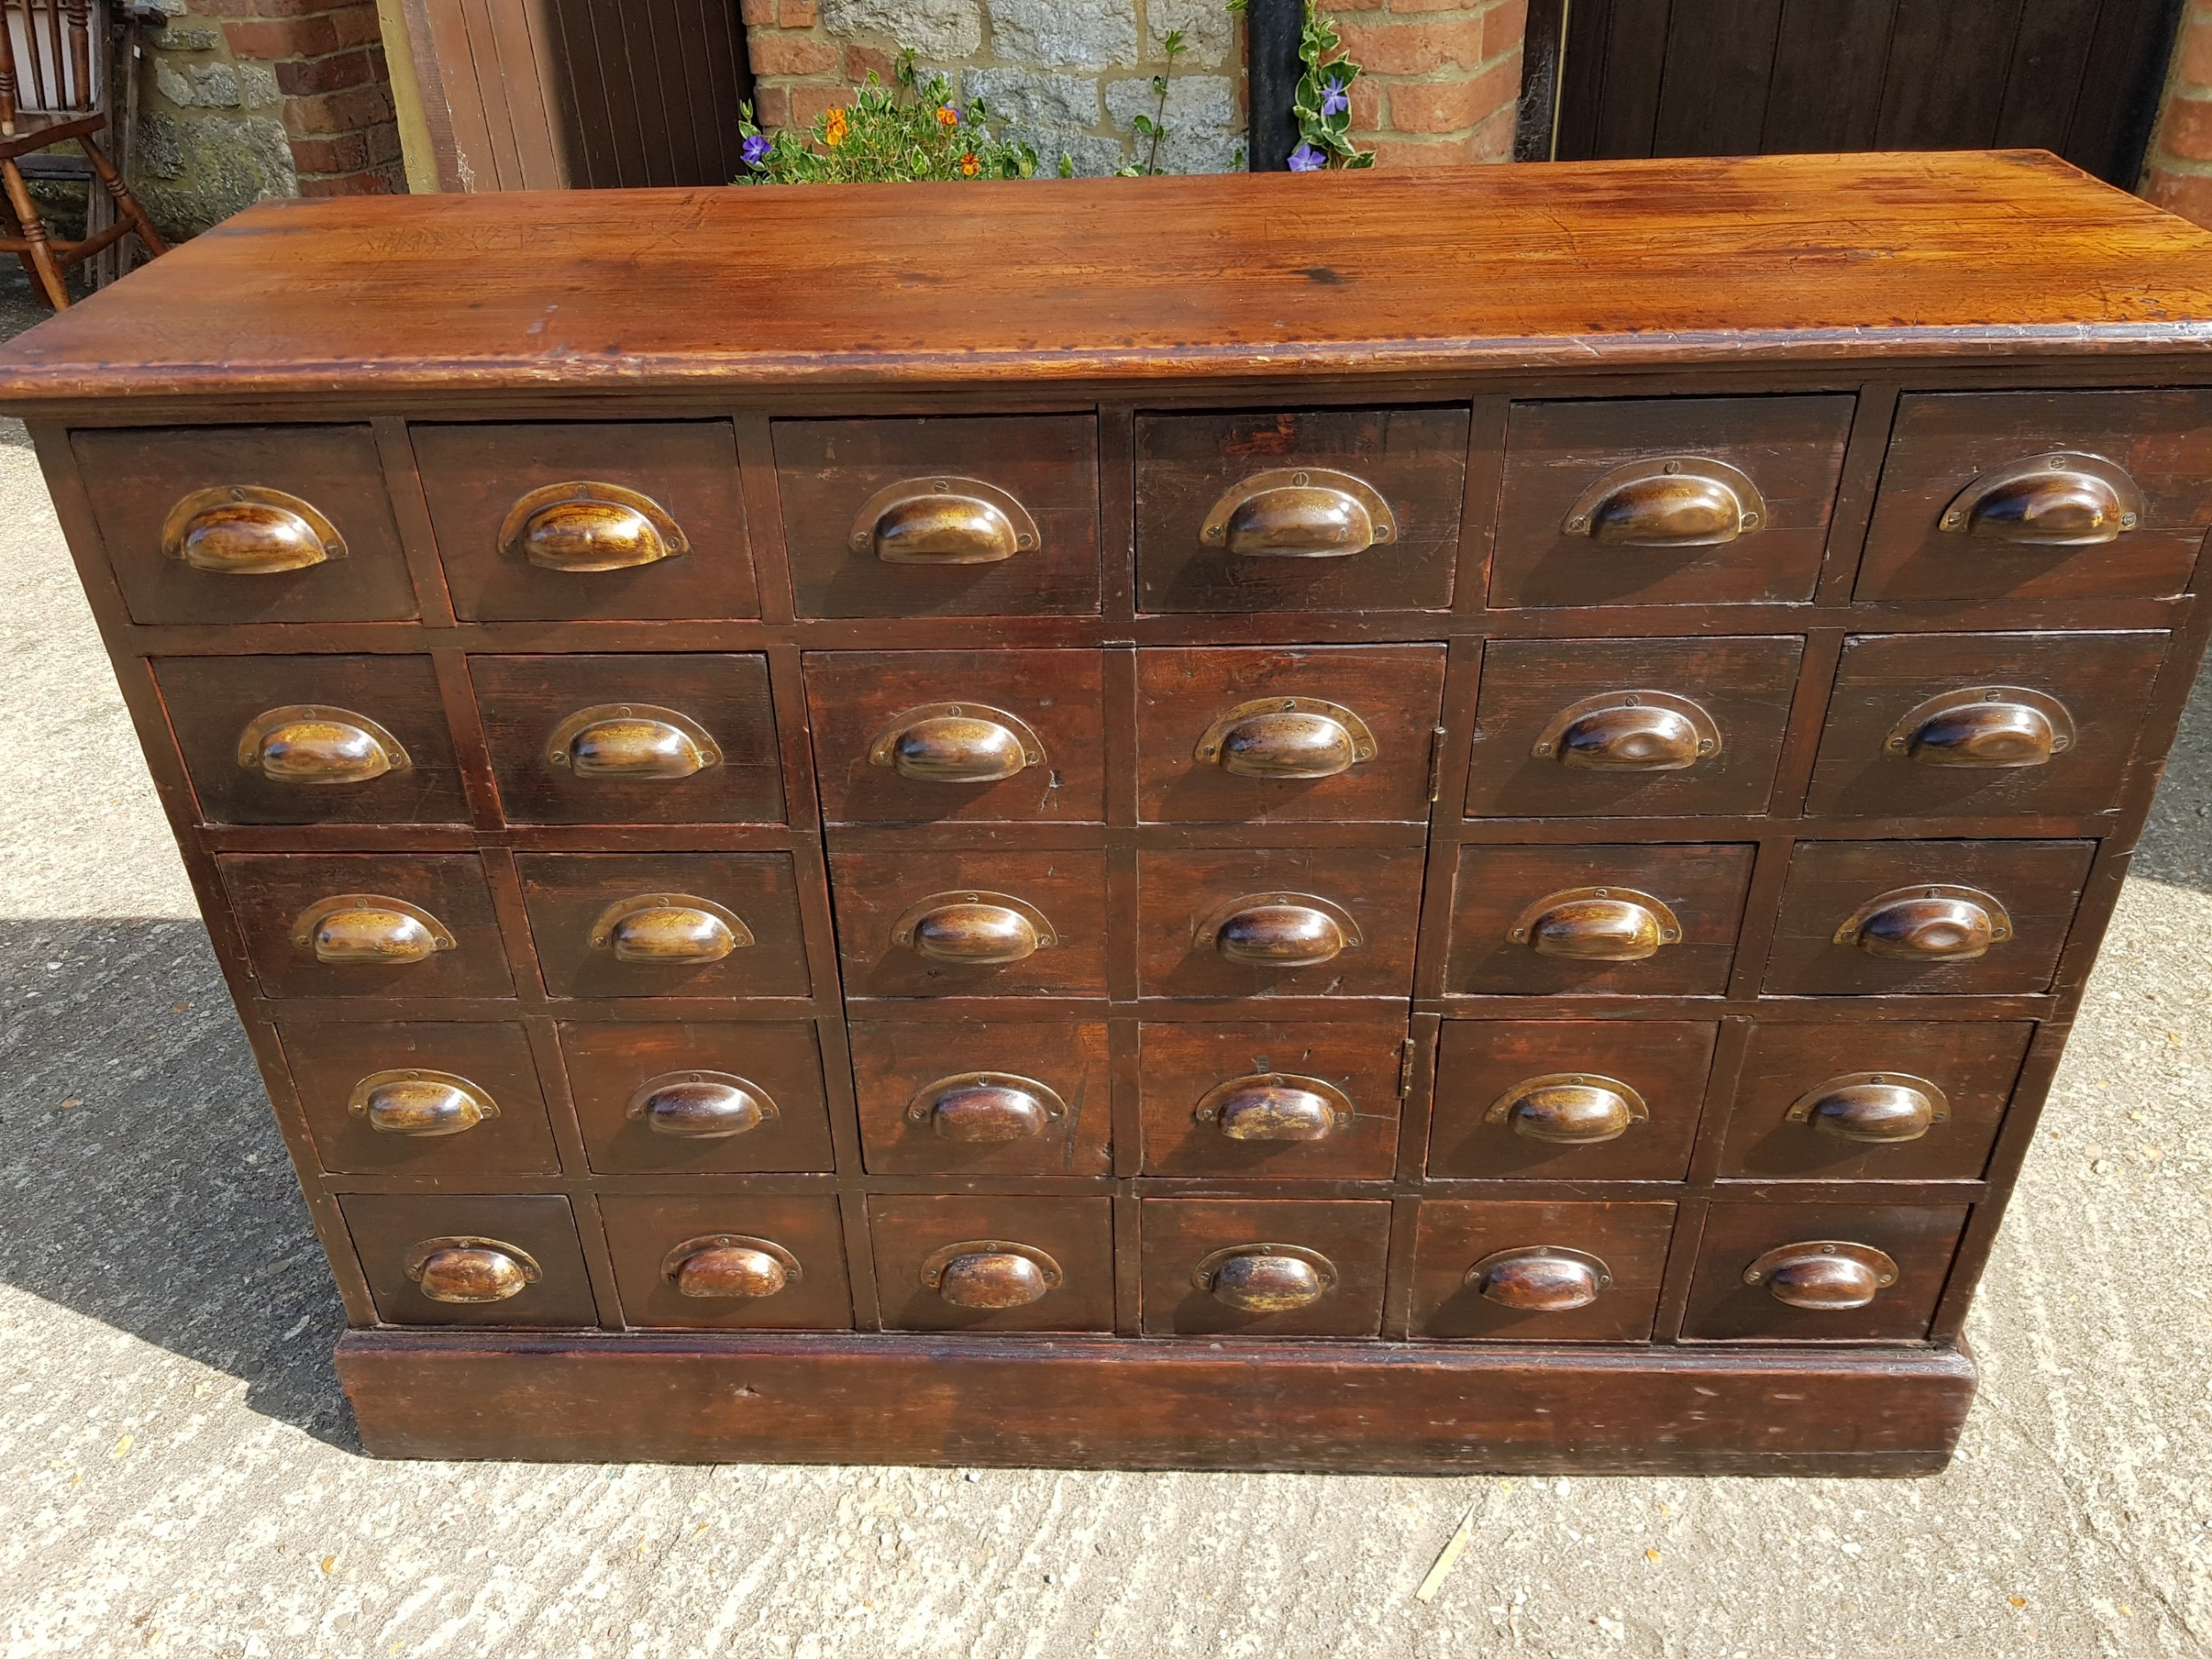 victorian pine bank of drawers with 24 drawers and a central cupboard door